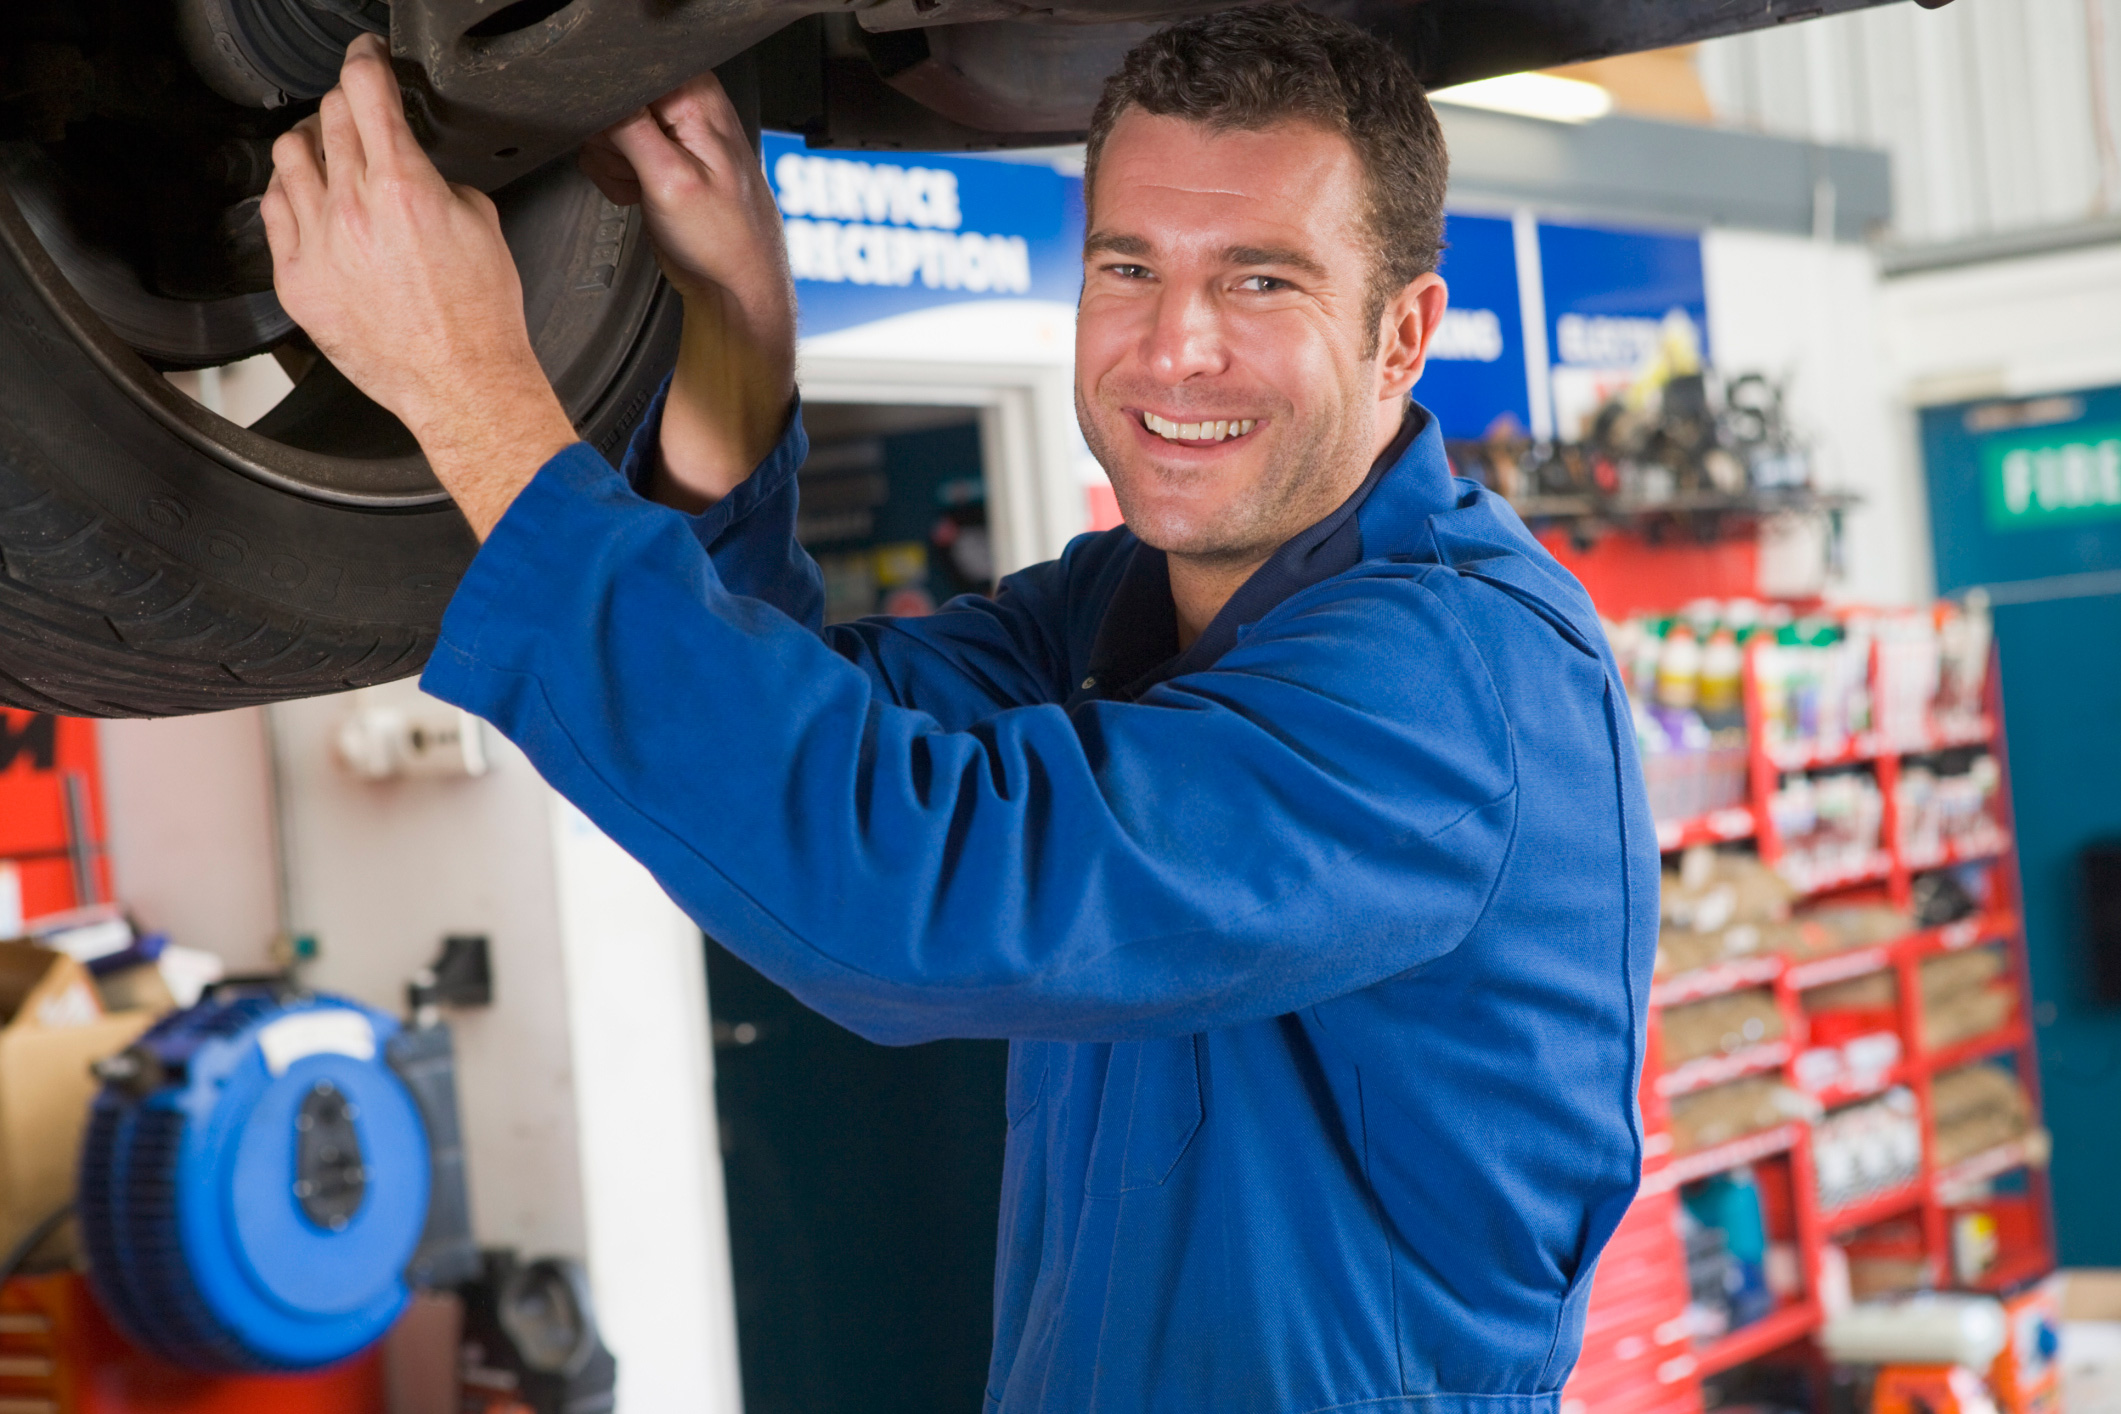 We Take The Service Of Your Vehicle Seriously At Bob Howard Honda, And We  Want To Provide You With The Best Experience Possible.